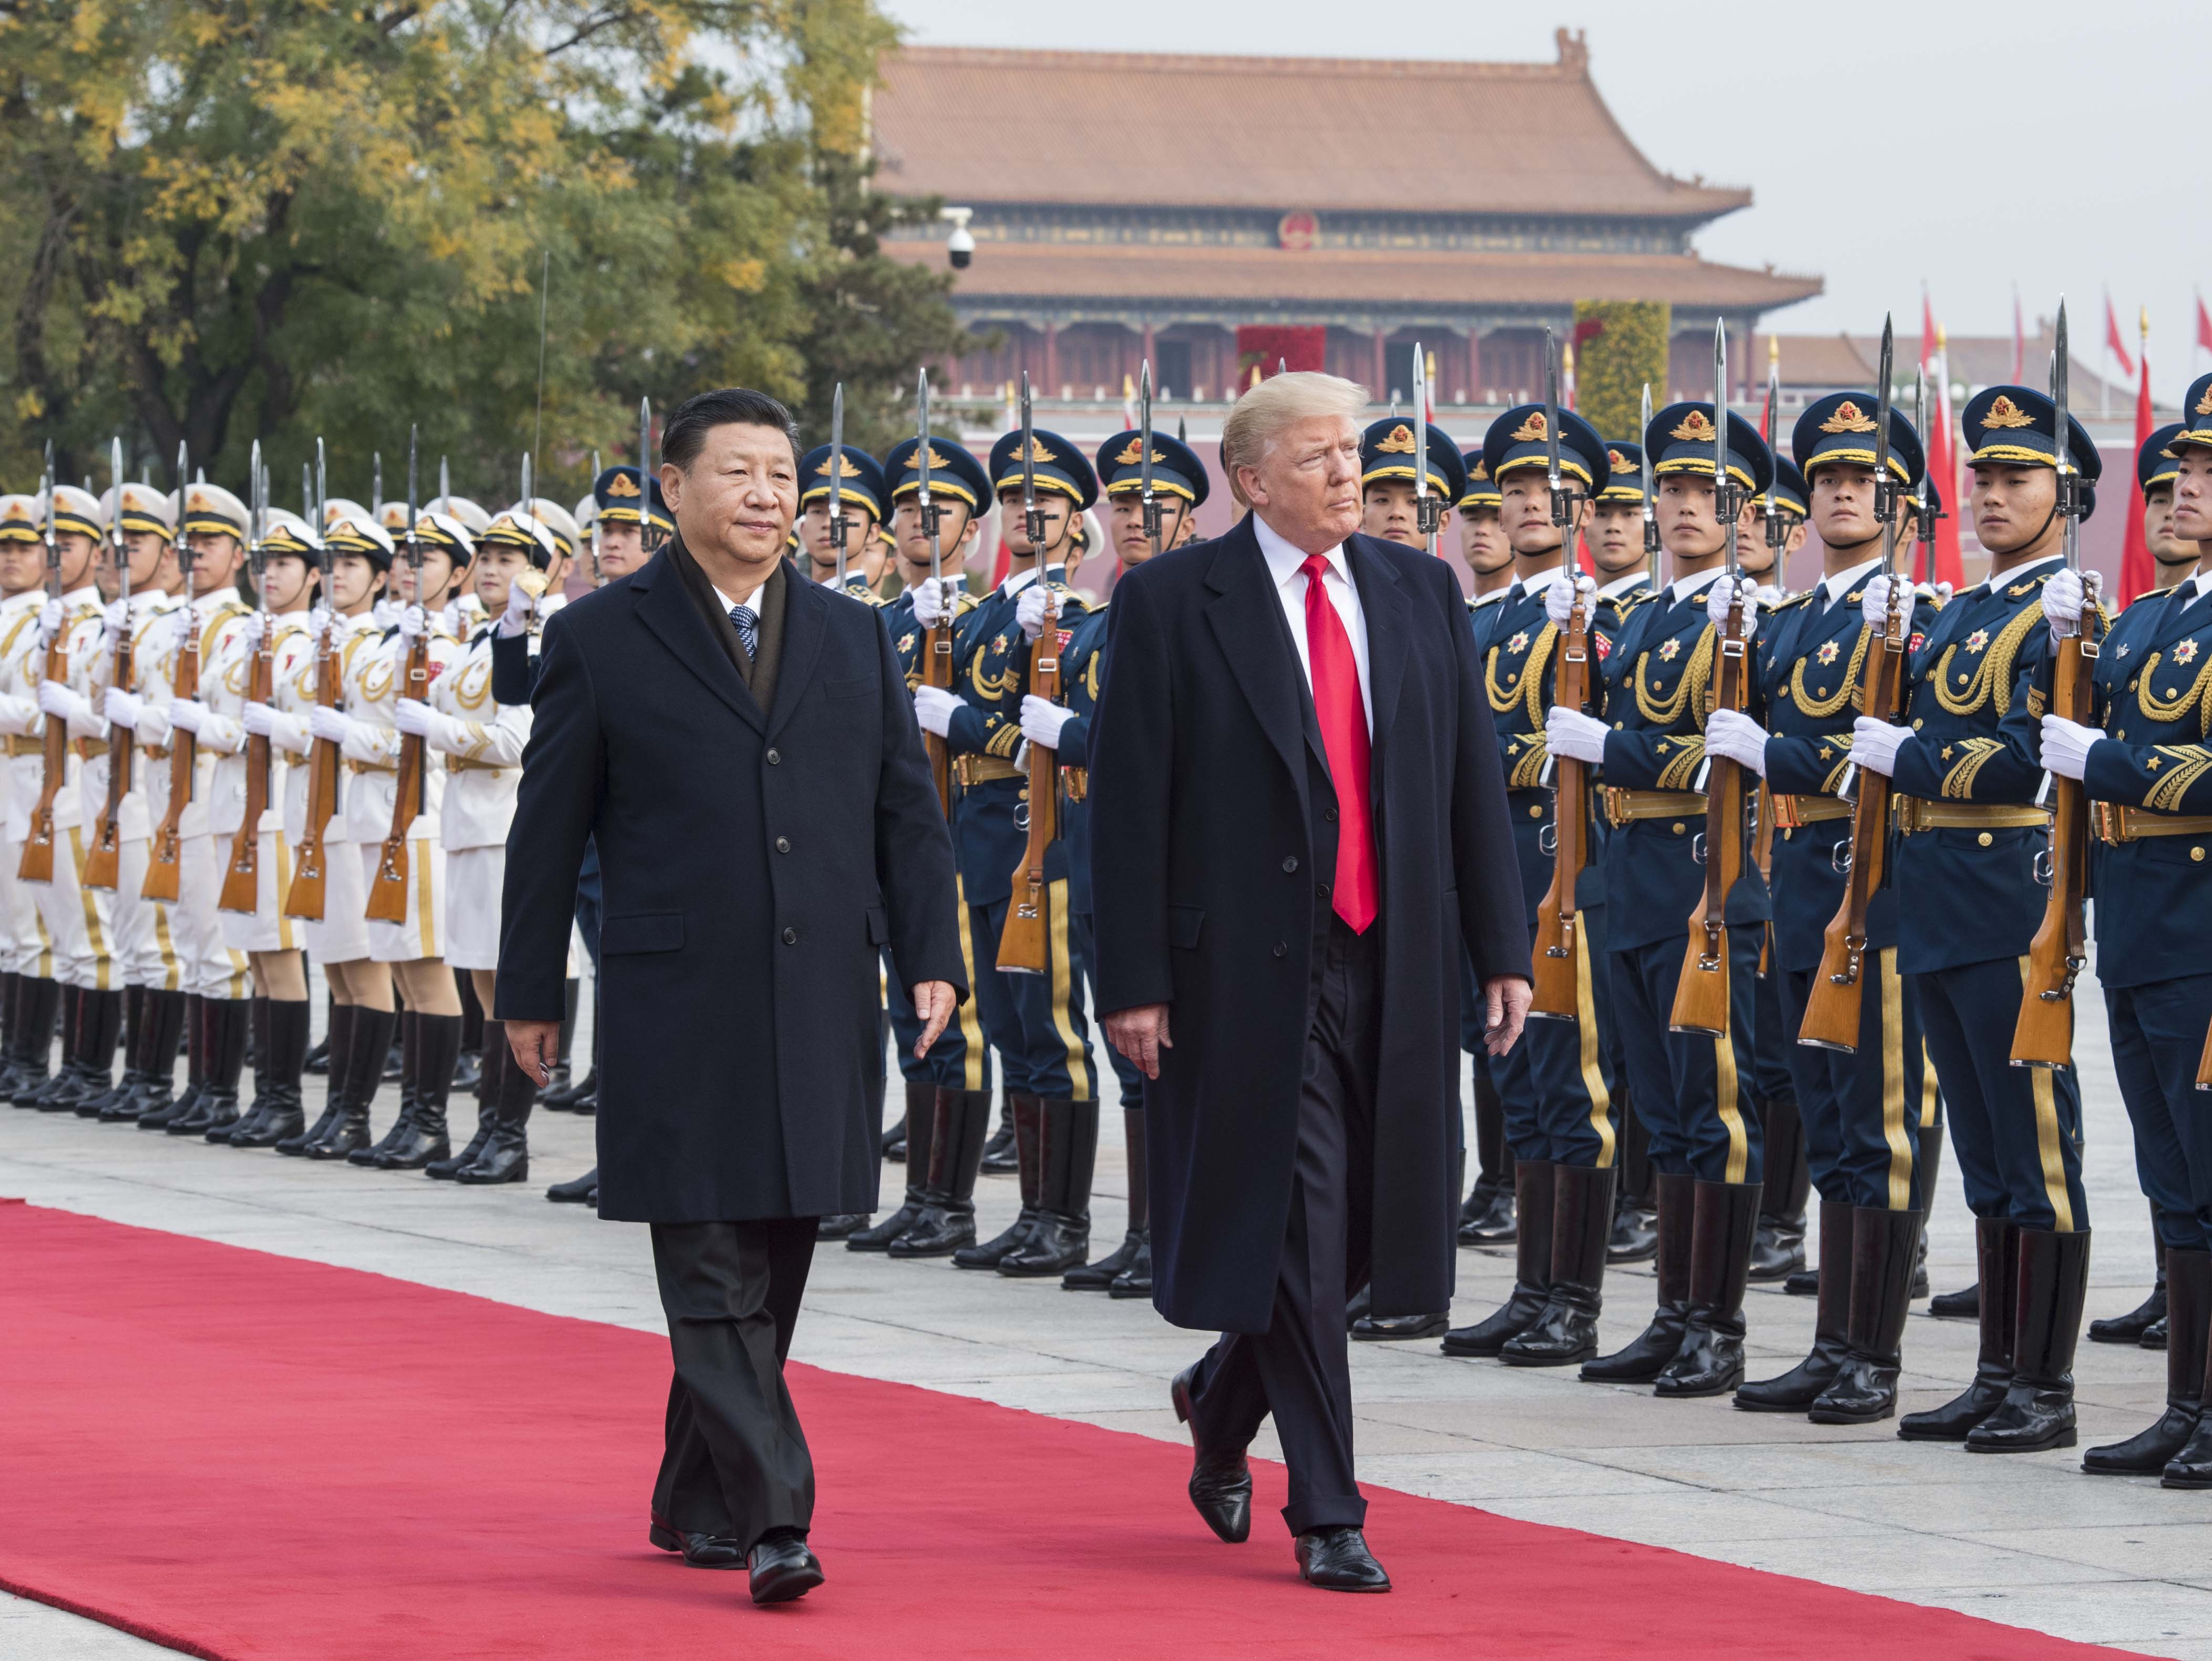 Chinese President Xi Jinping (L) holds a grand ceremony to welcome U.S. President Donald Trump at the square outside the east gate of the Great Hall of the People in Beijing, China, on Nov. 9, 2017.